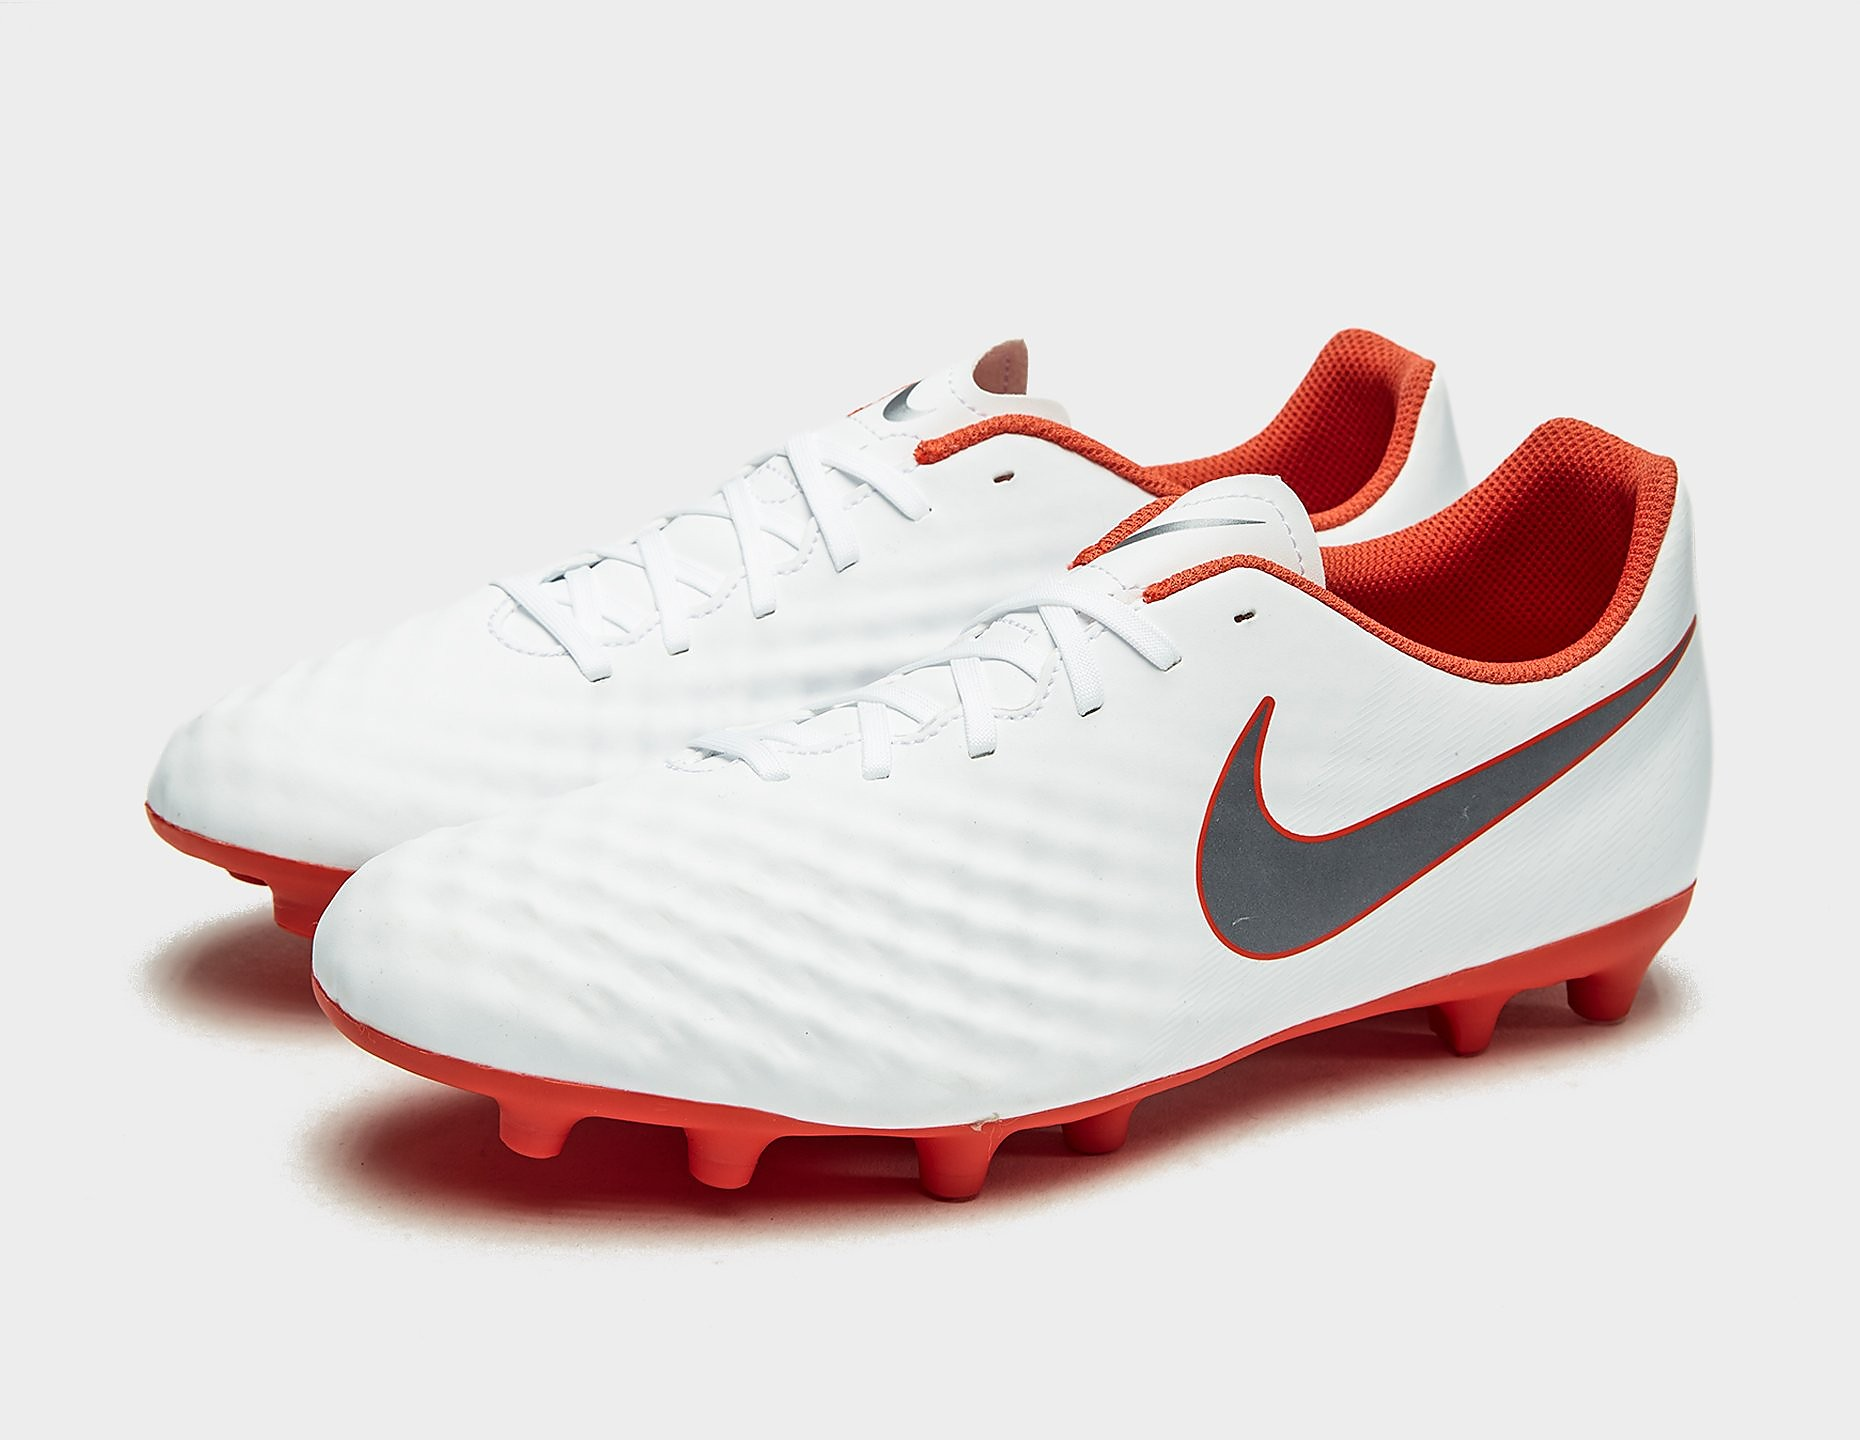 Nike Just Do It Magista Club FG